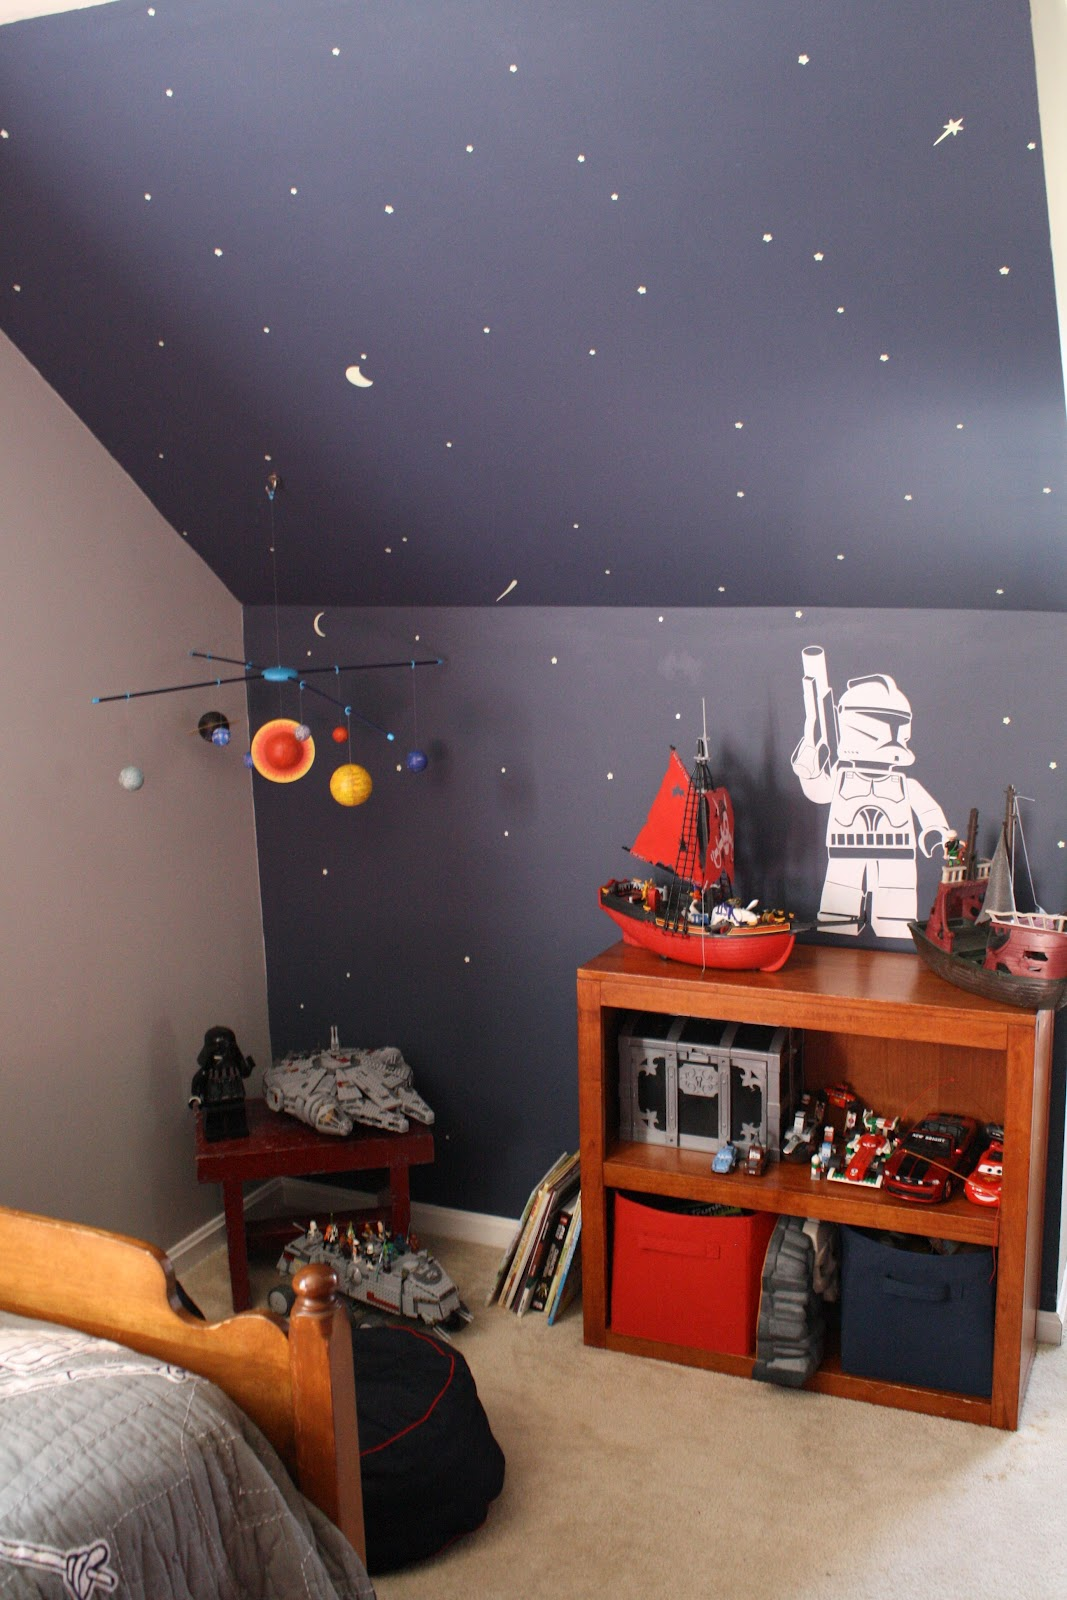 Star Wars Bedroom Ideas Themes Designing Kids Rooms For A Boy And Girl